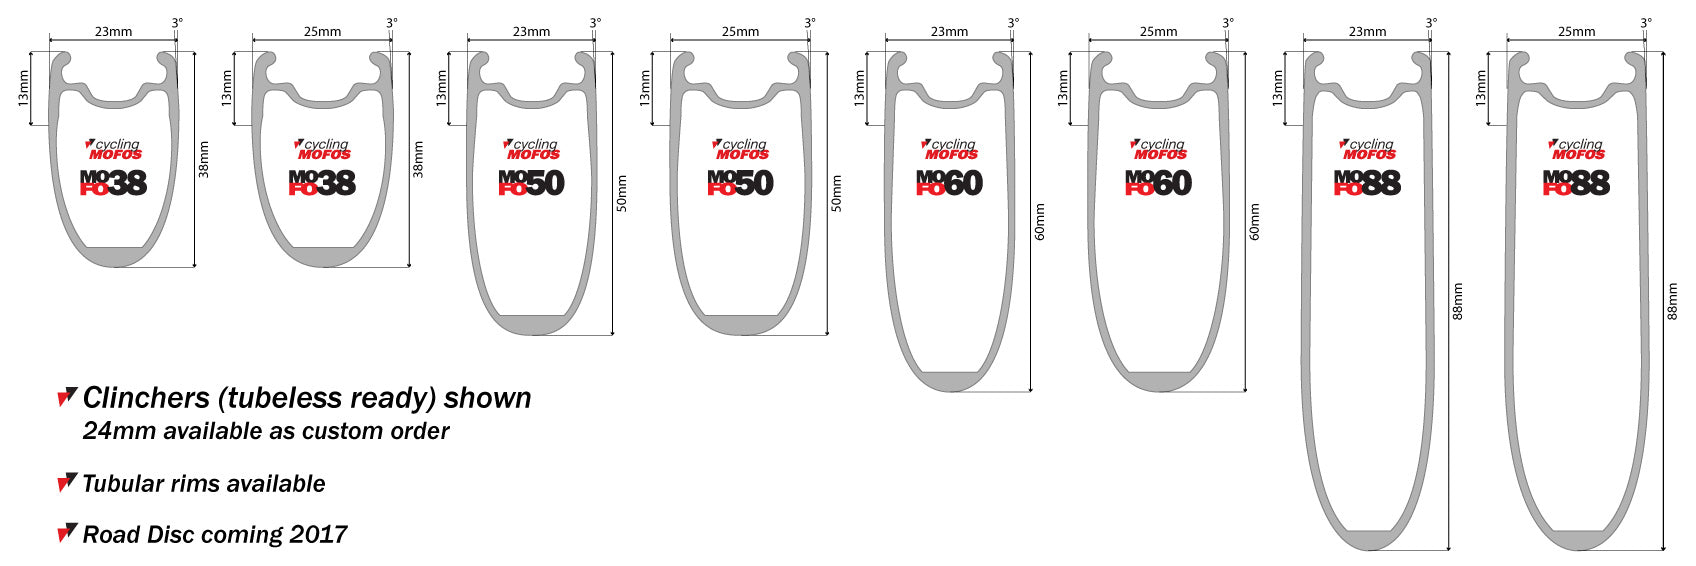 cyclingMOFOS Road Rim Specifications